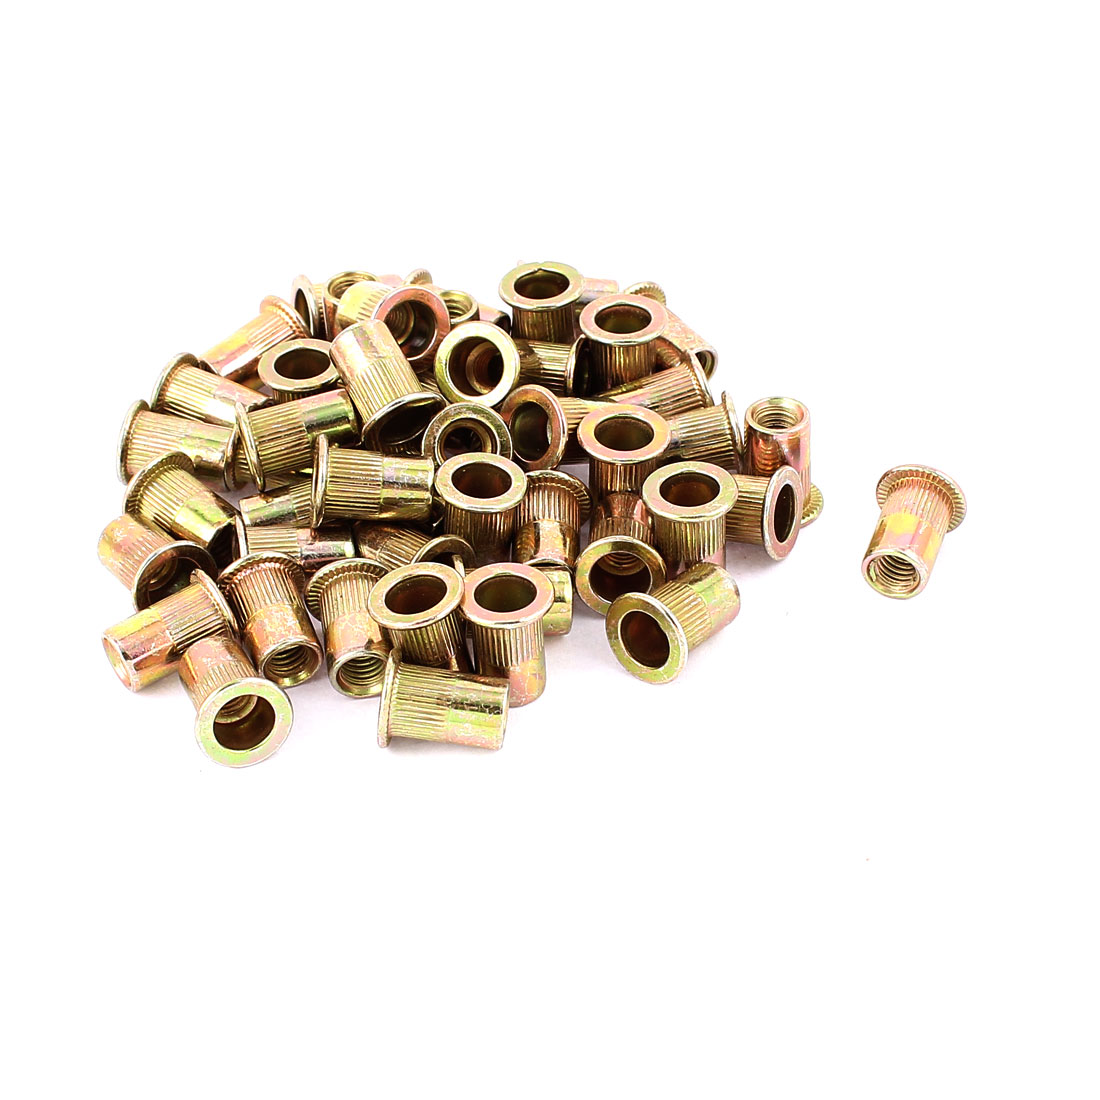 6mm Thread Dia 15mm Long Metal Rivet Nut Insert Nutsert Gold Tone 50Pcs